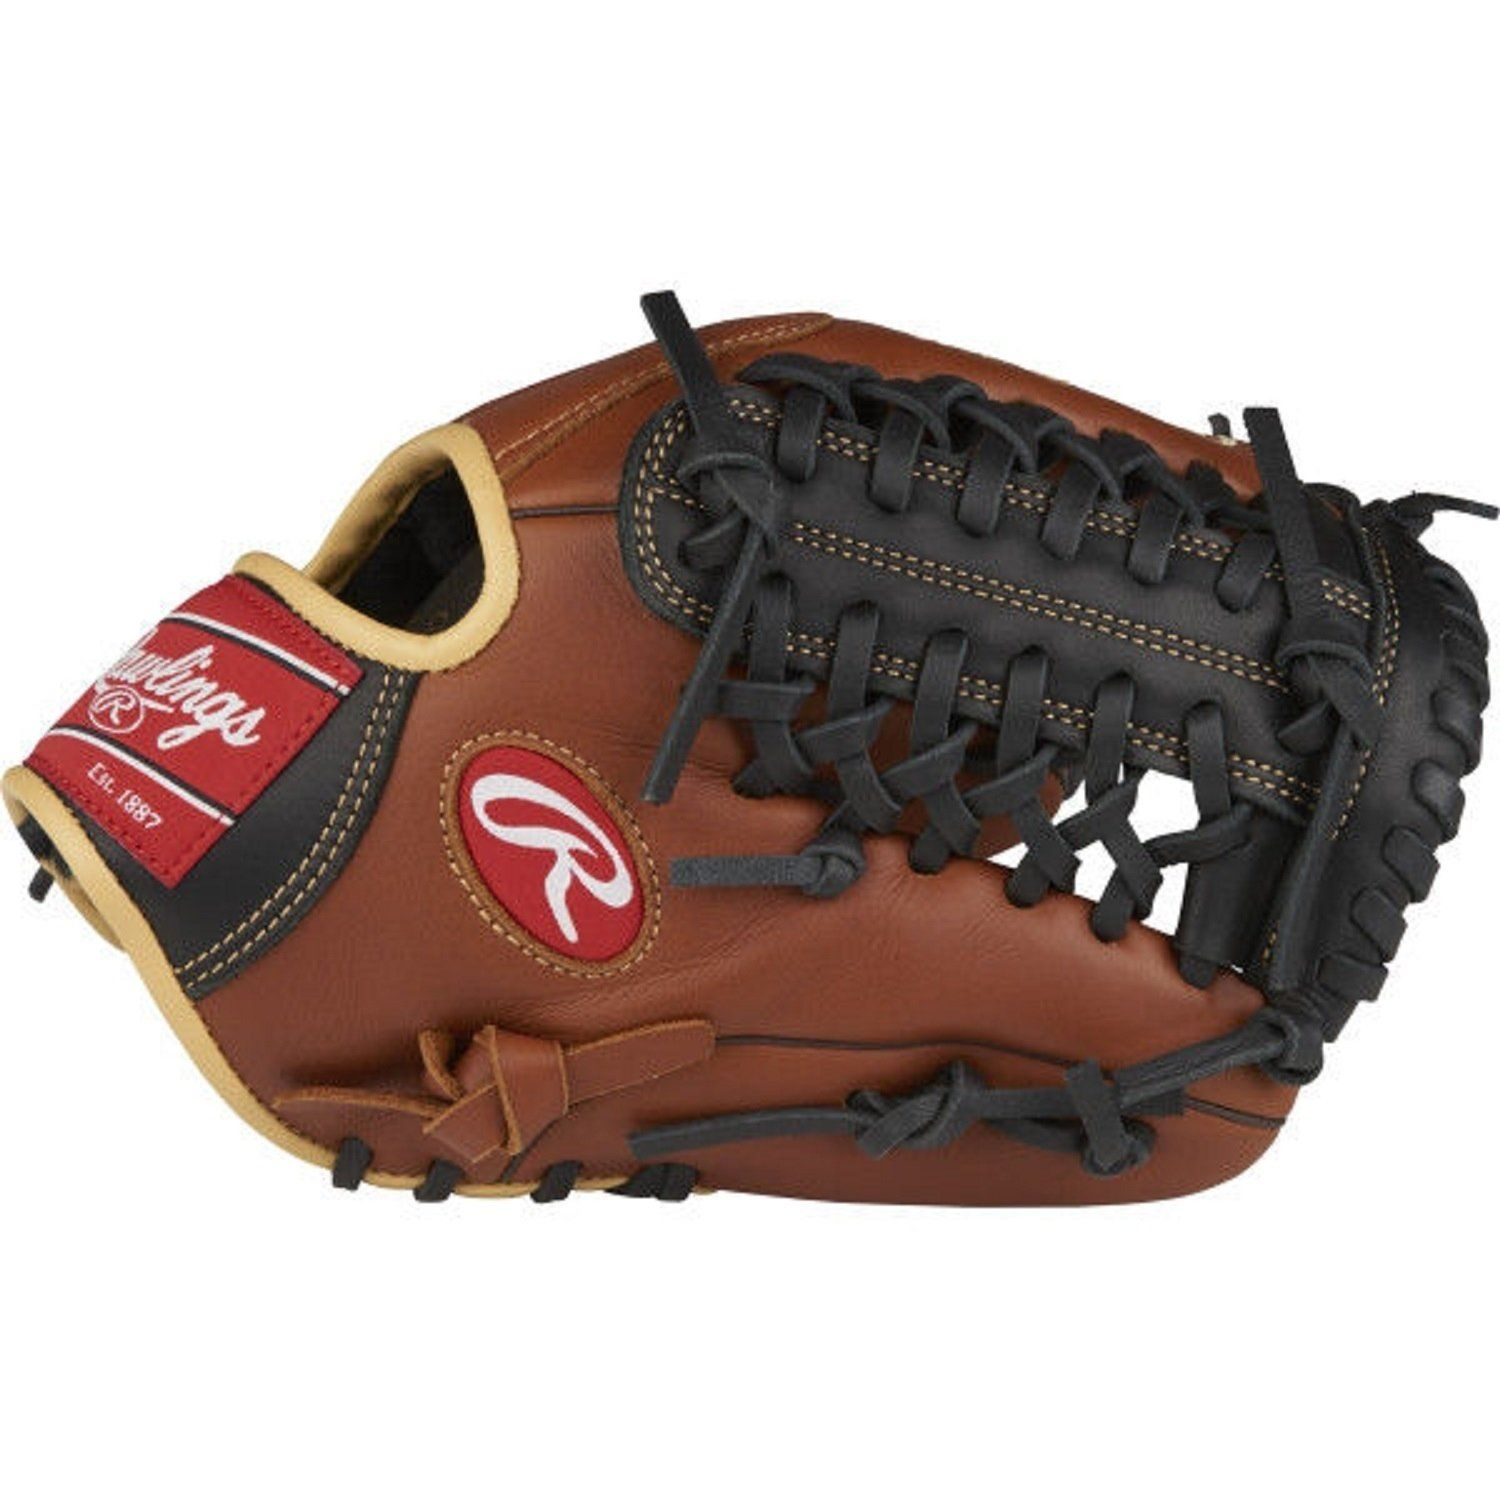 Rawlings Sandlot Series 11 3 4 Infield Pitching Glove Right Brown Baseball Glove Youth Baseball Gloves The Sandlot